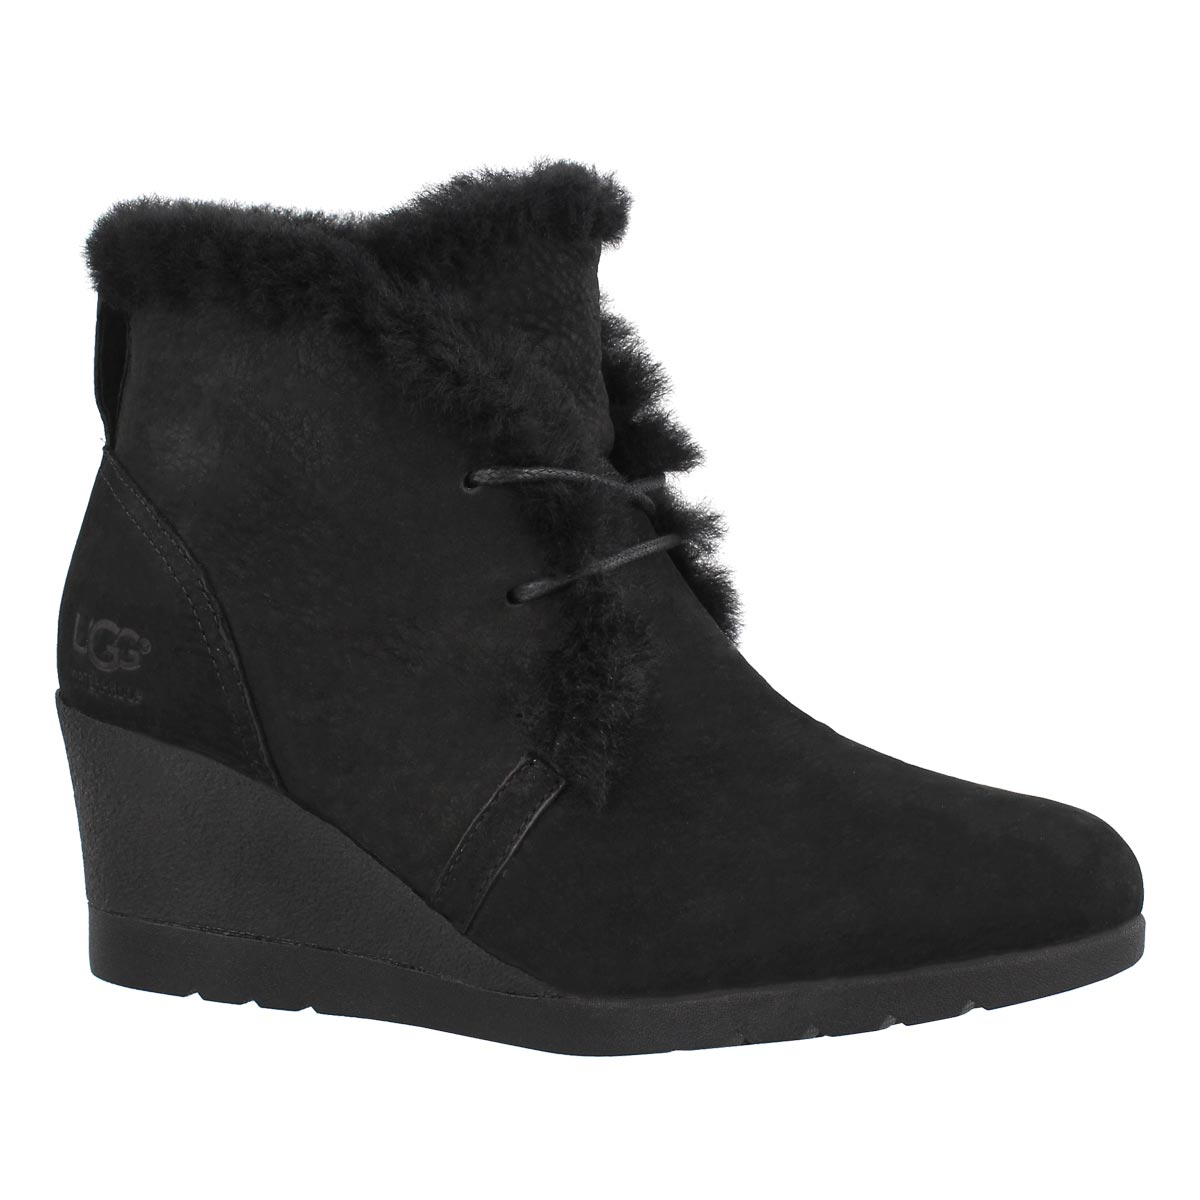 Women's JEOVANA black laceup wtpf wedge boots